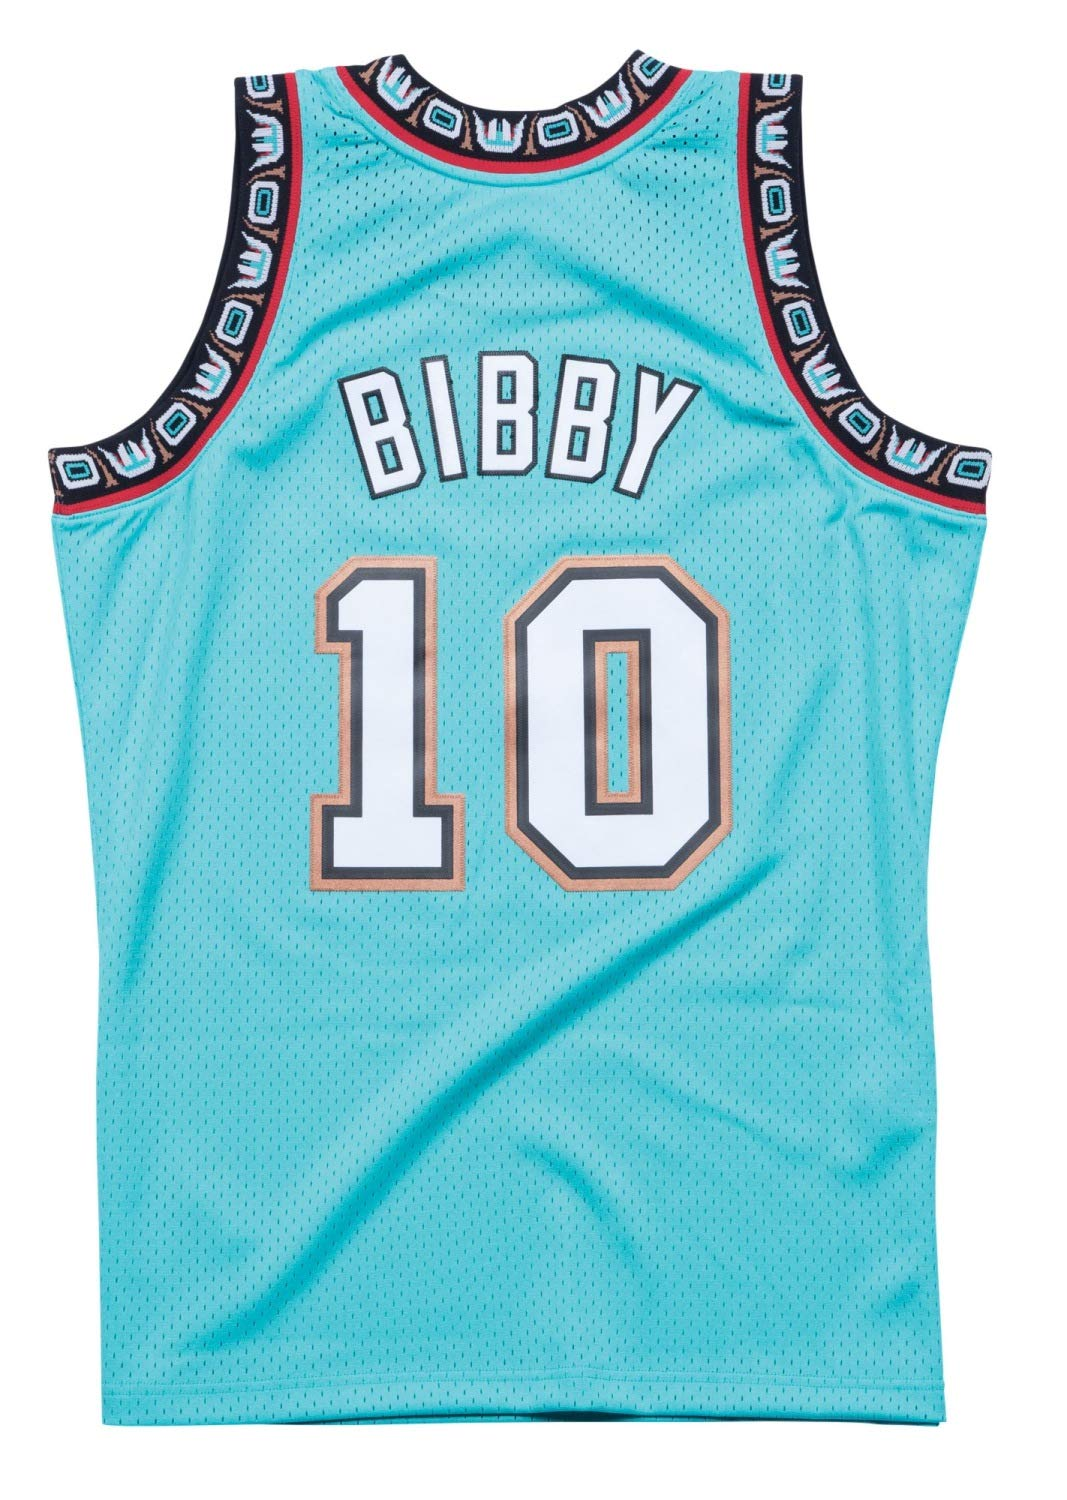 6dd9f5da7e1 Amazon.com : Mike Bibby Vancouver Grizzlies Mitchell and Ness Men's Teal  Throwback Jersey : Clothing